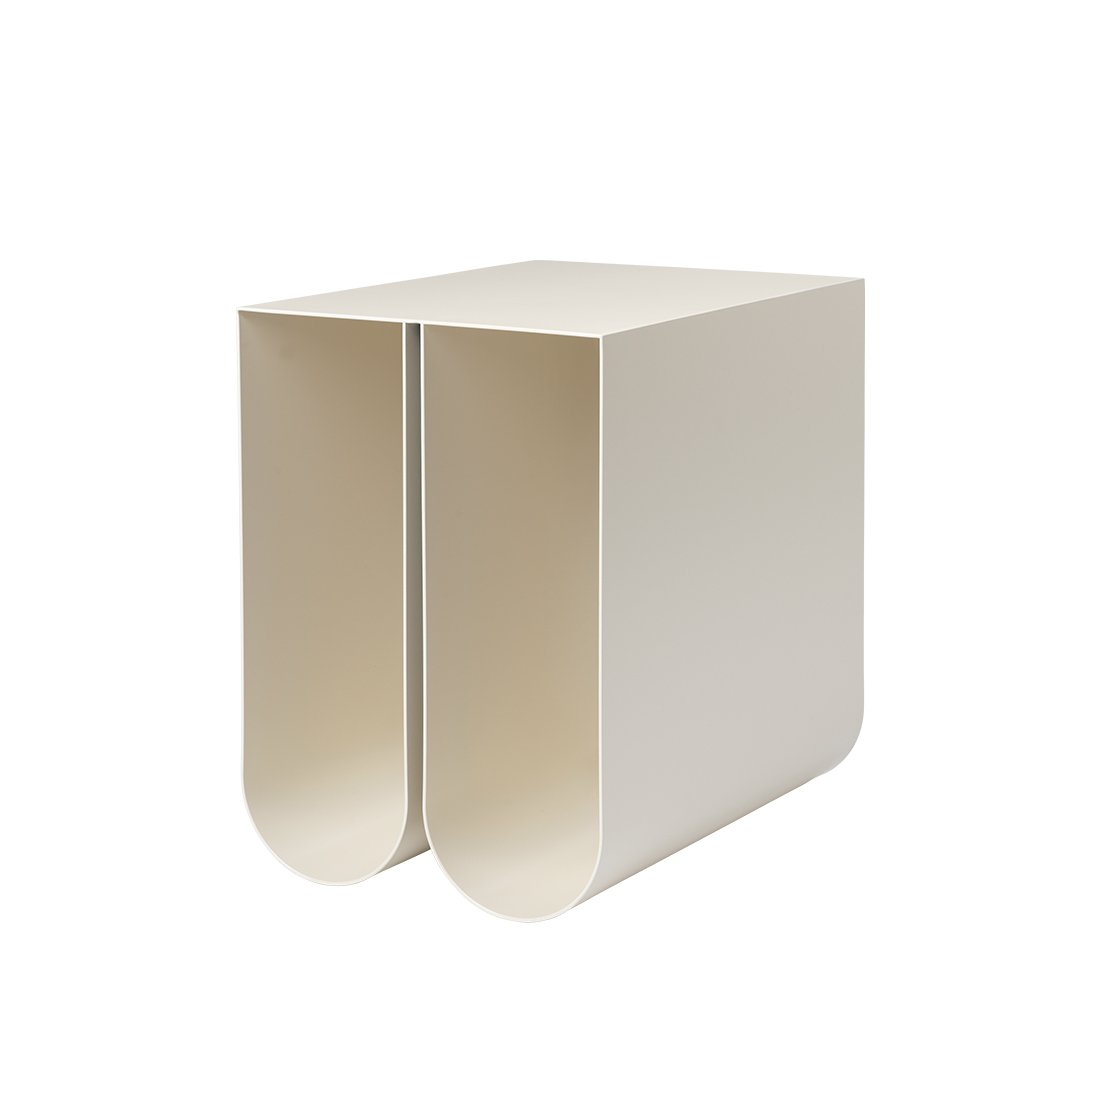 Kristina dam studio curved side table beige sidebord magasin holder